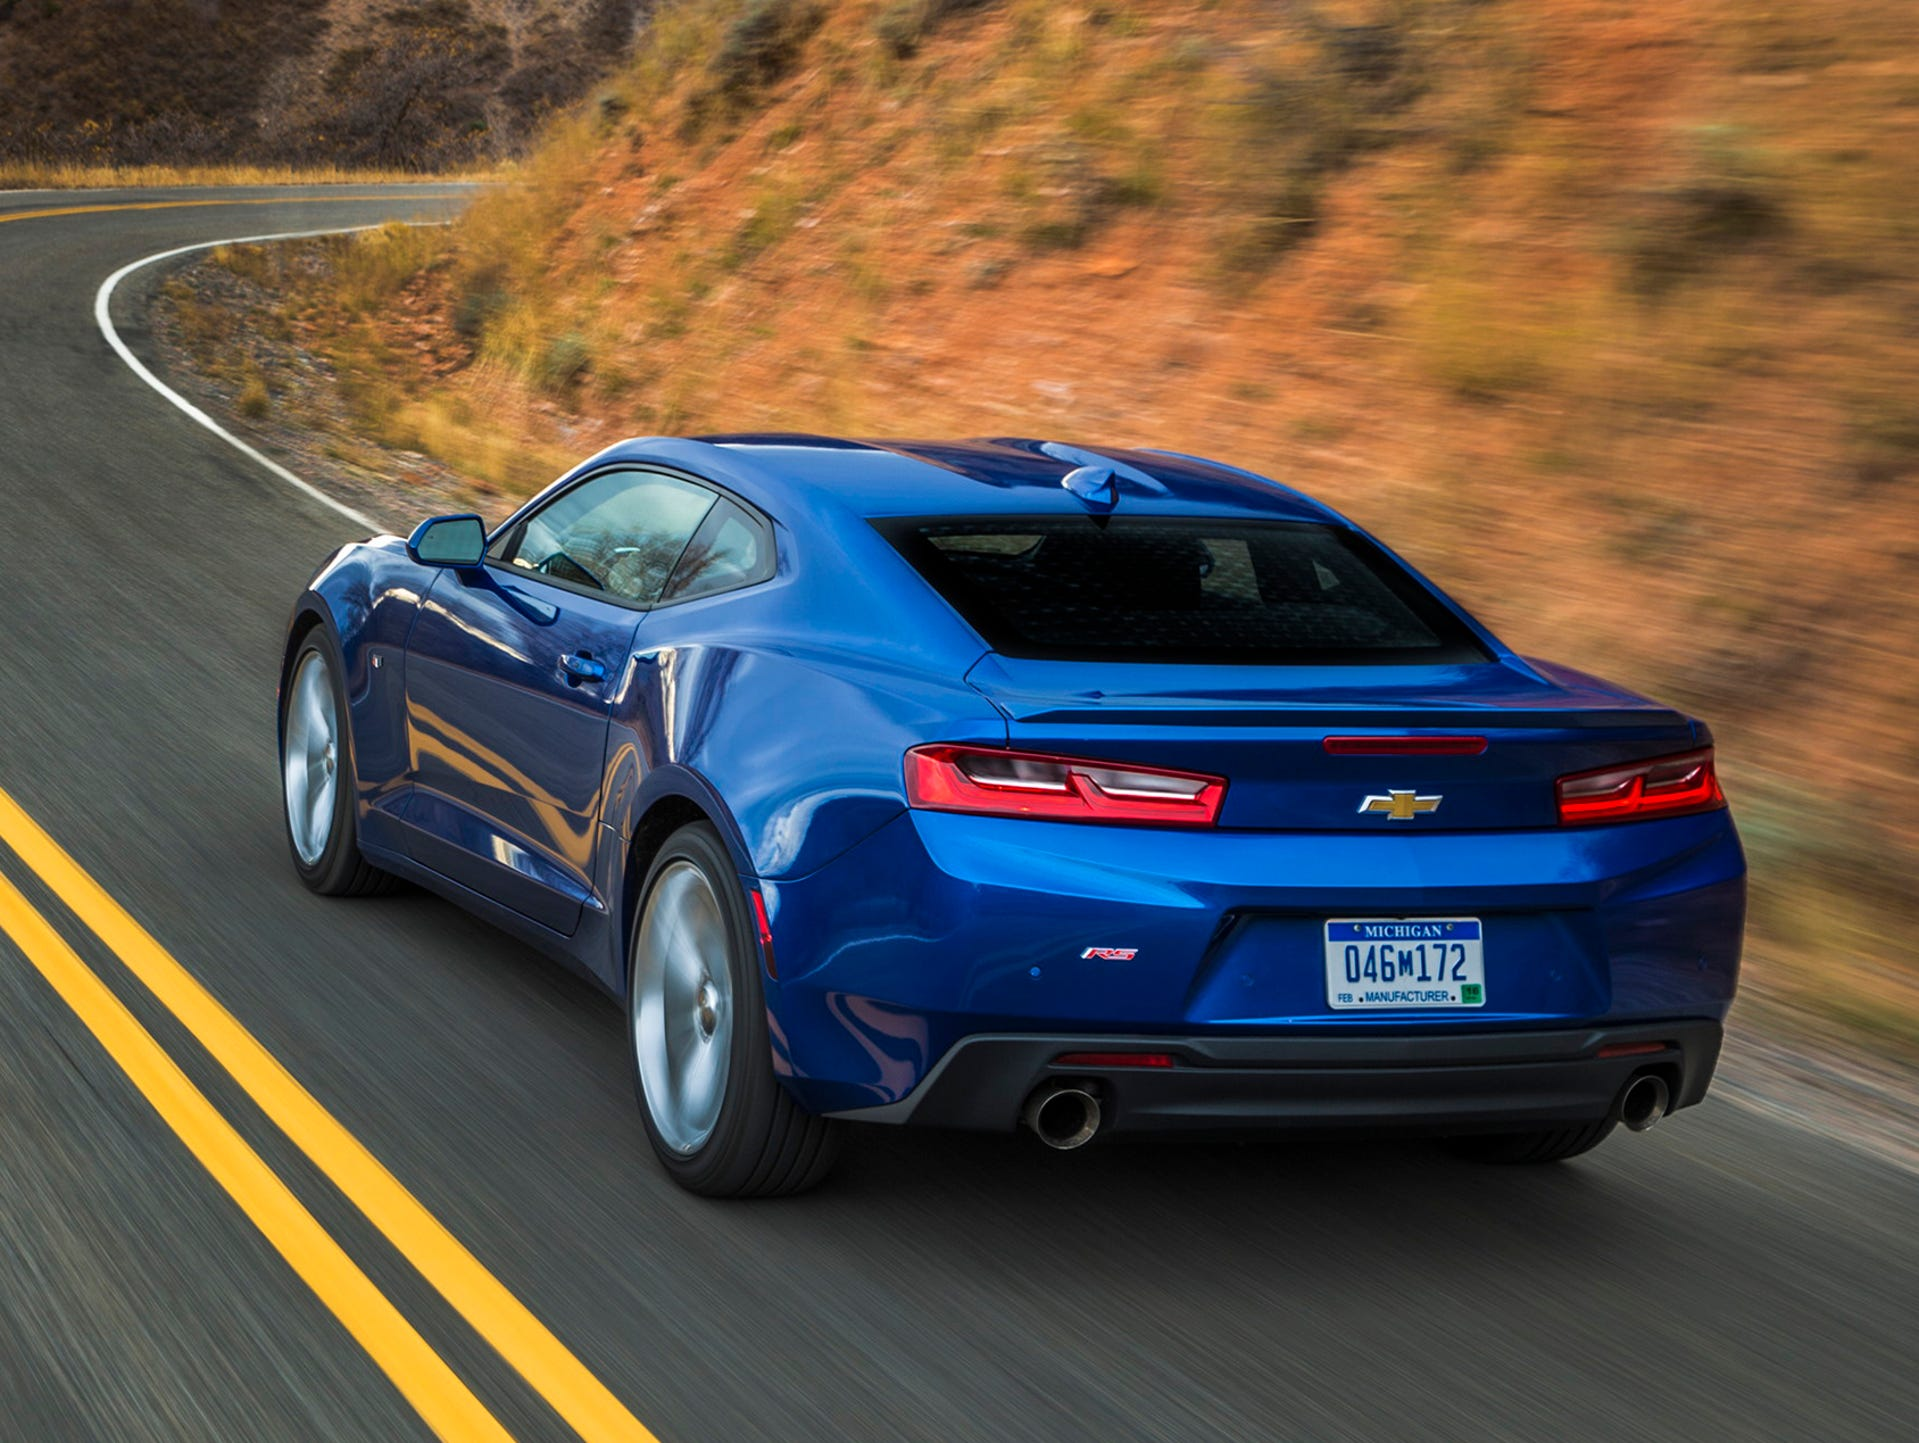 2016: Powered by a Corvette-shared, 455-horse V-8,